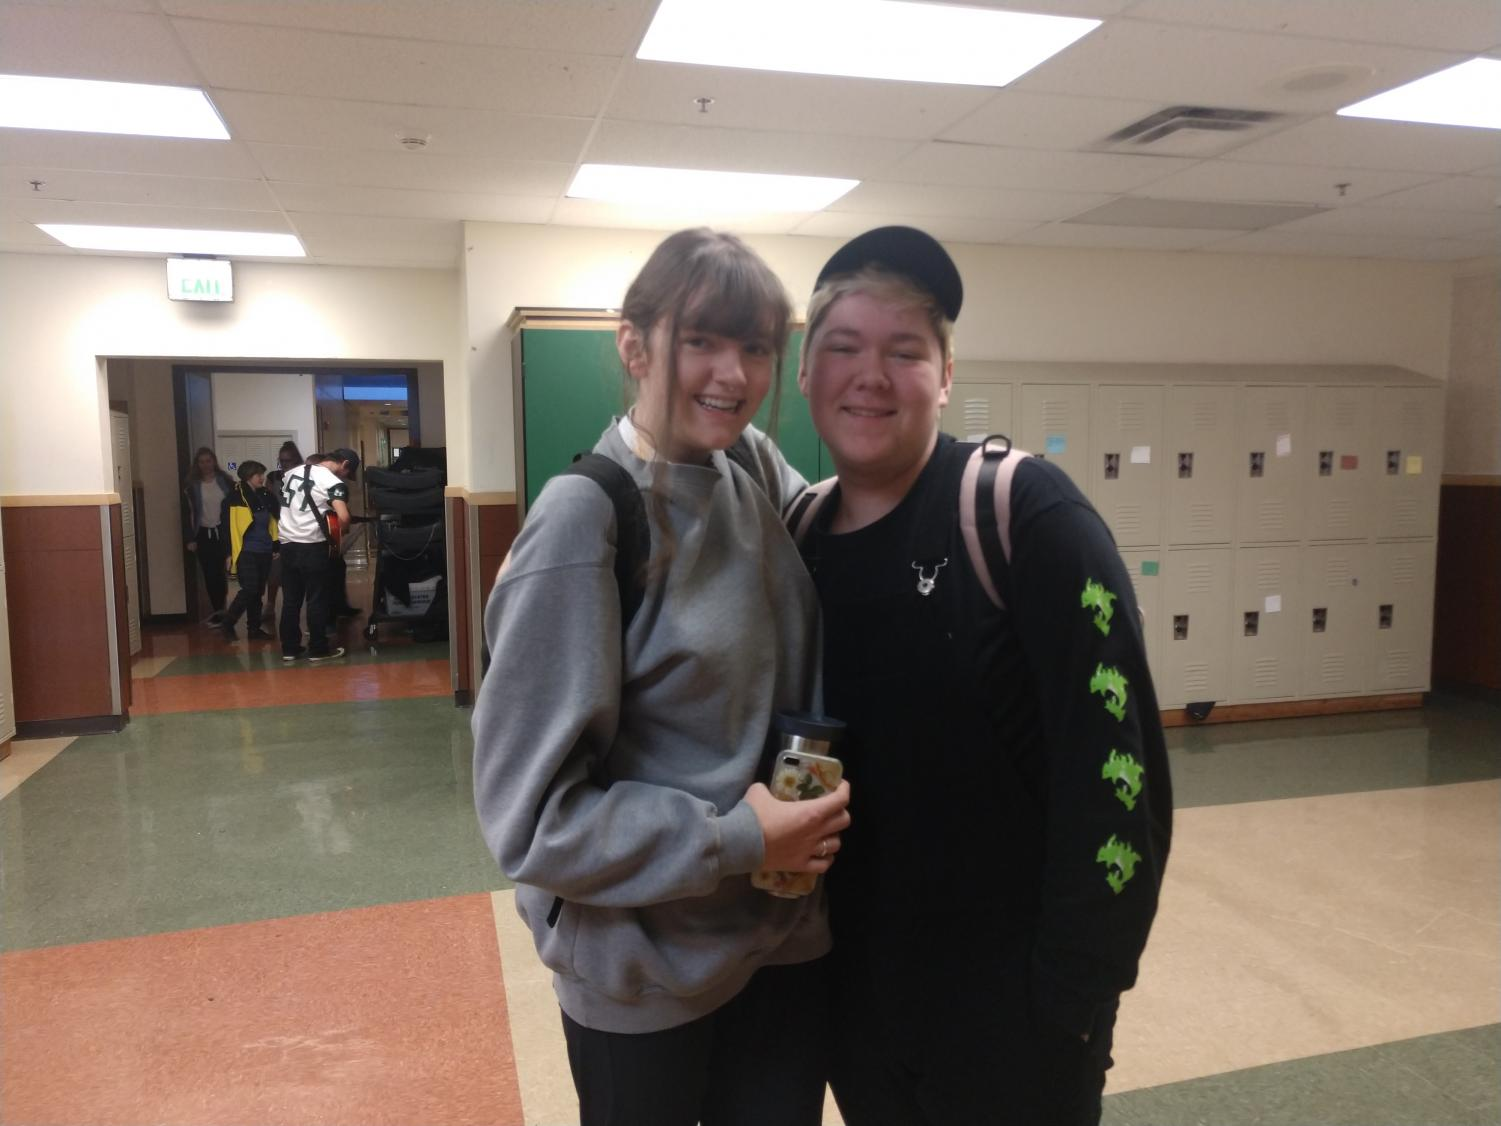 Jessica Woolfolk (12) is president of Climate Club and Dryden Raschdorf (11) is one of the club's officers. Climate Club hopes to instill a recycling and composting program within the school this year.